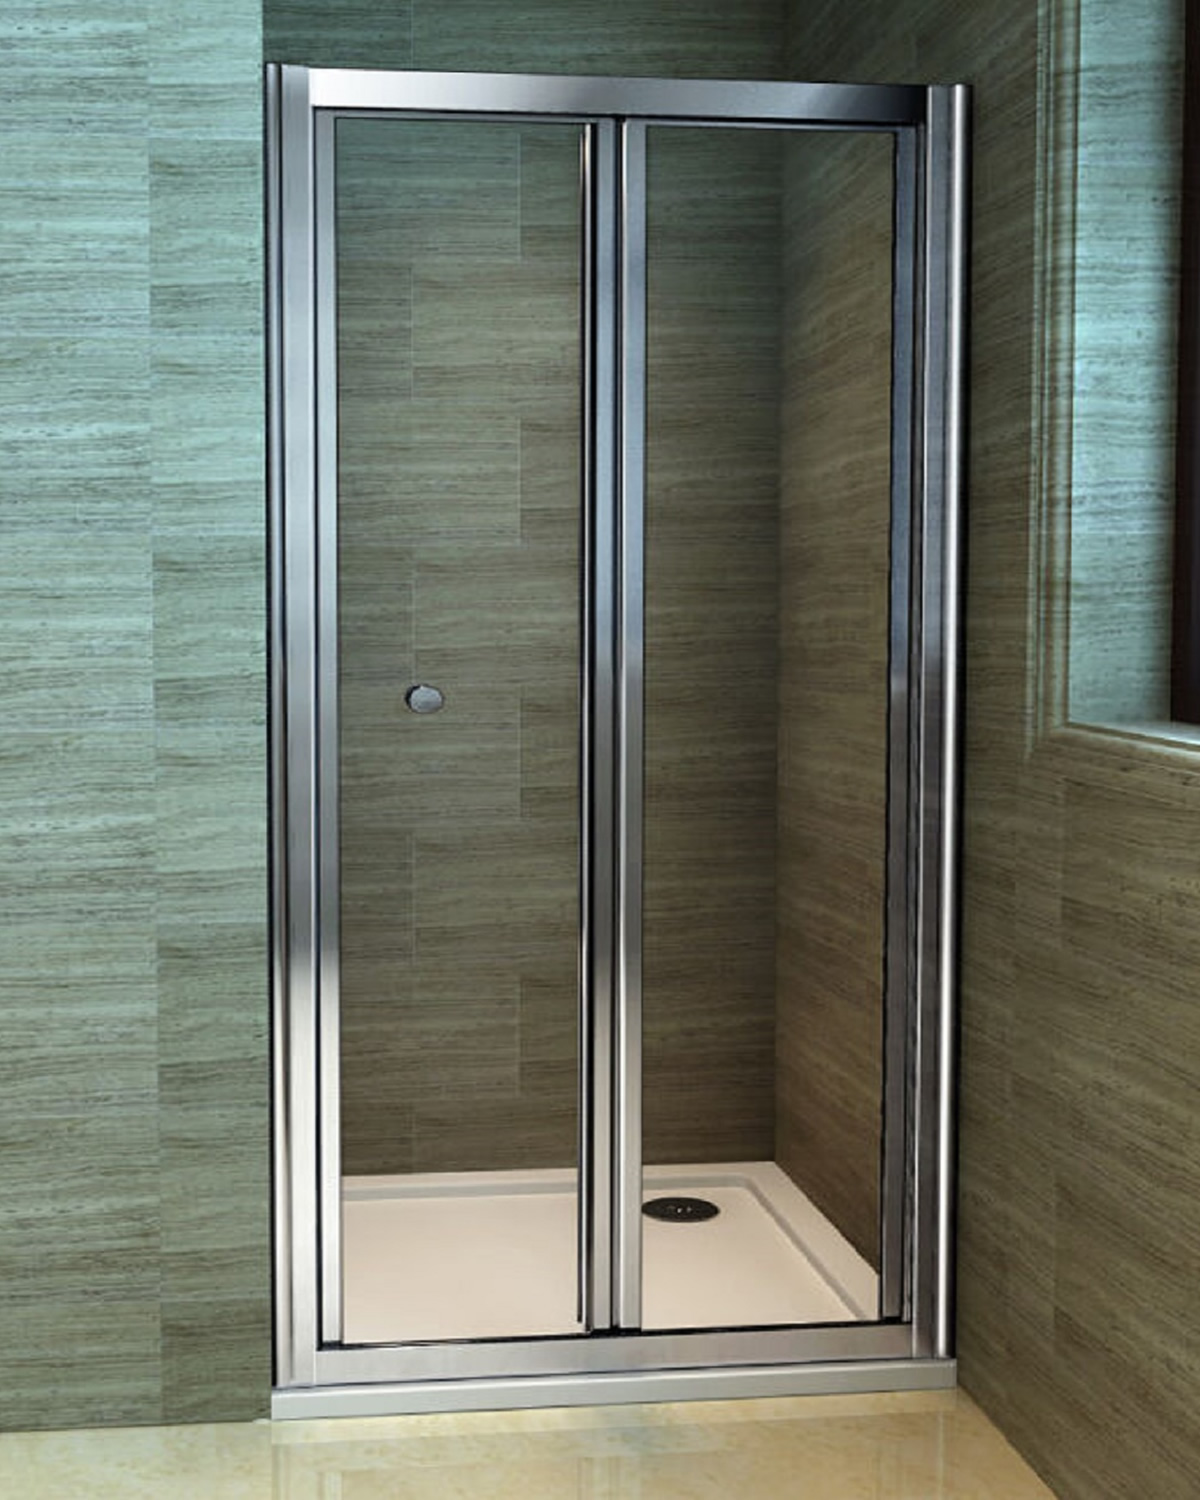 2 760 Bi Fold Shower Door Bathroom On A Budget